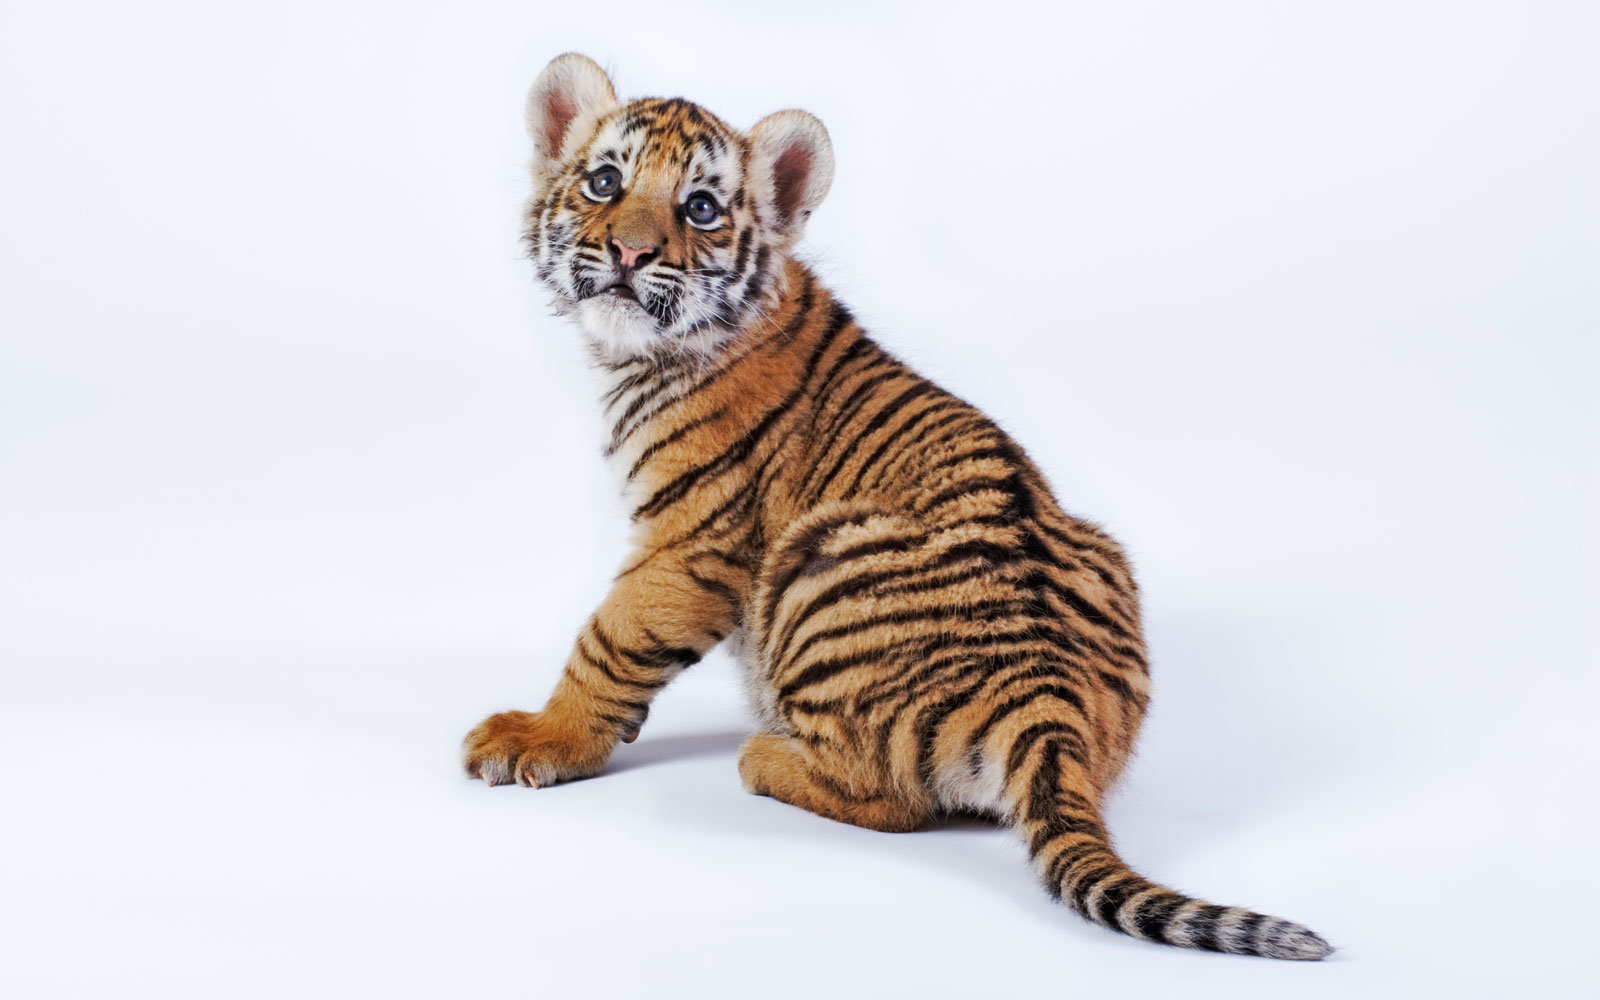 Teen Tried to Smuggle Tiger Cub Into U.S. From Mexico ...